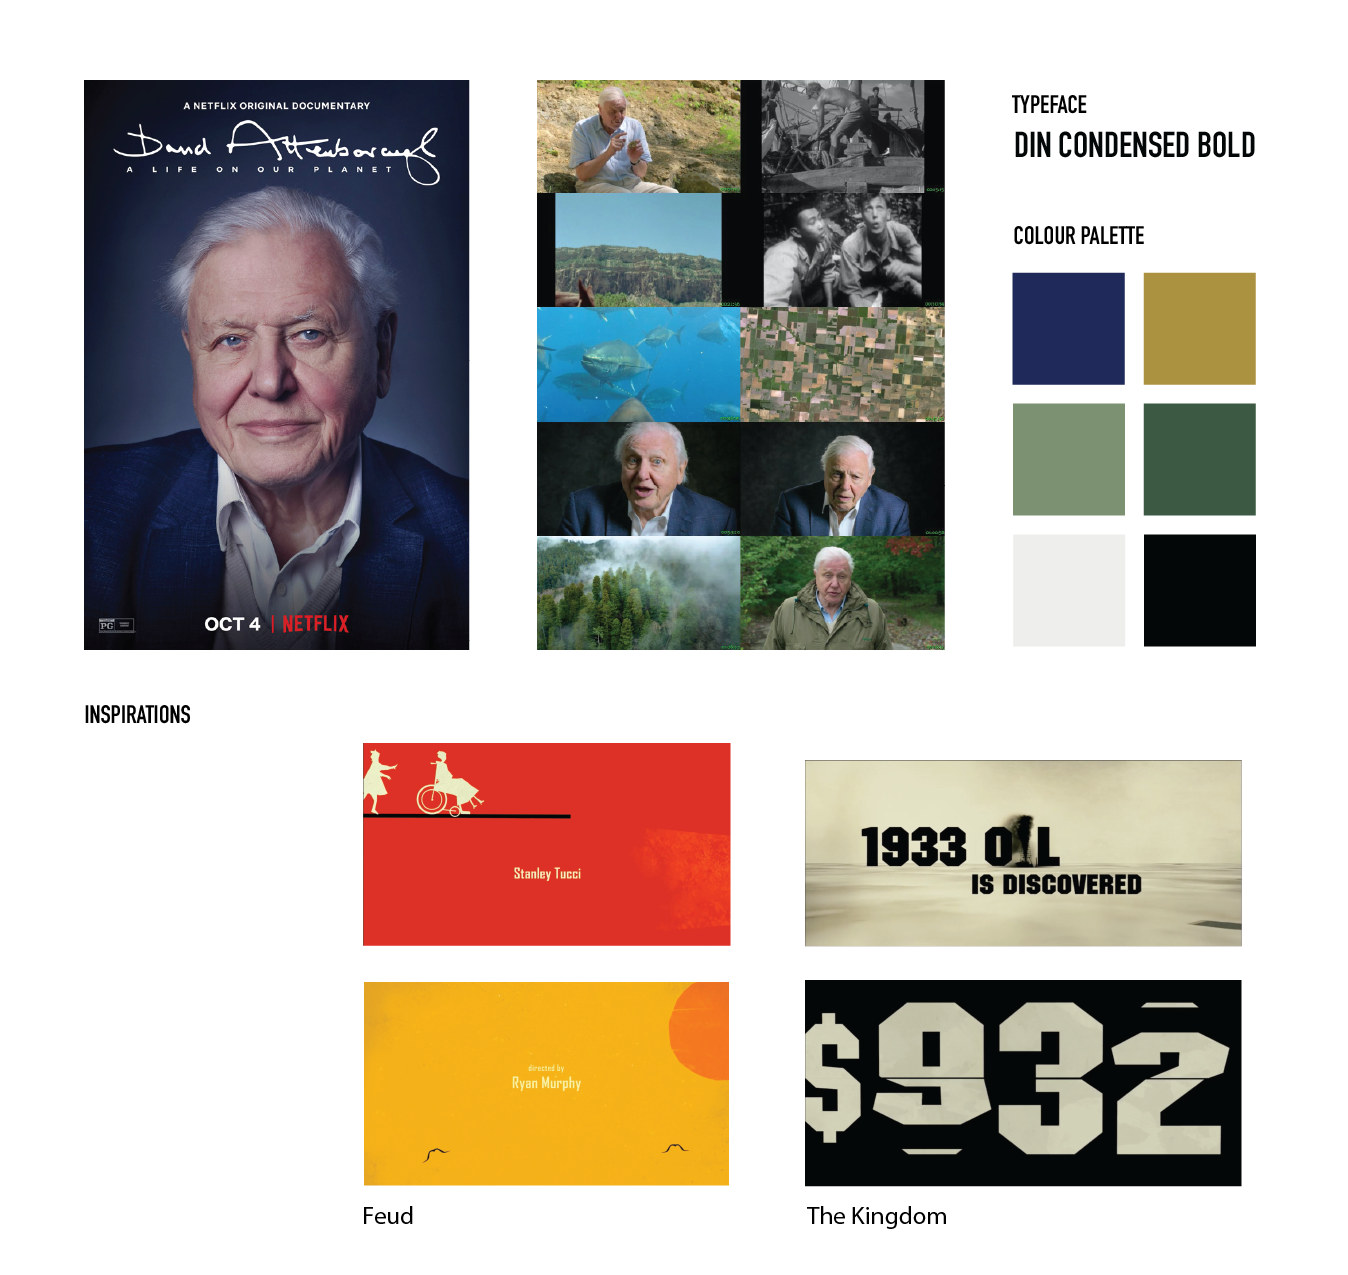 A collection of reference images, typefaces, and colour palettes formed as a moodboard.